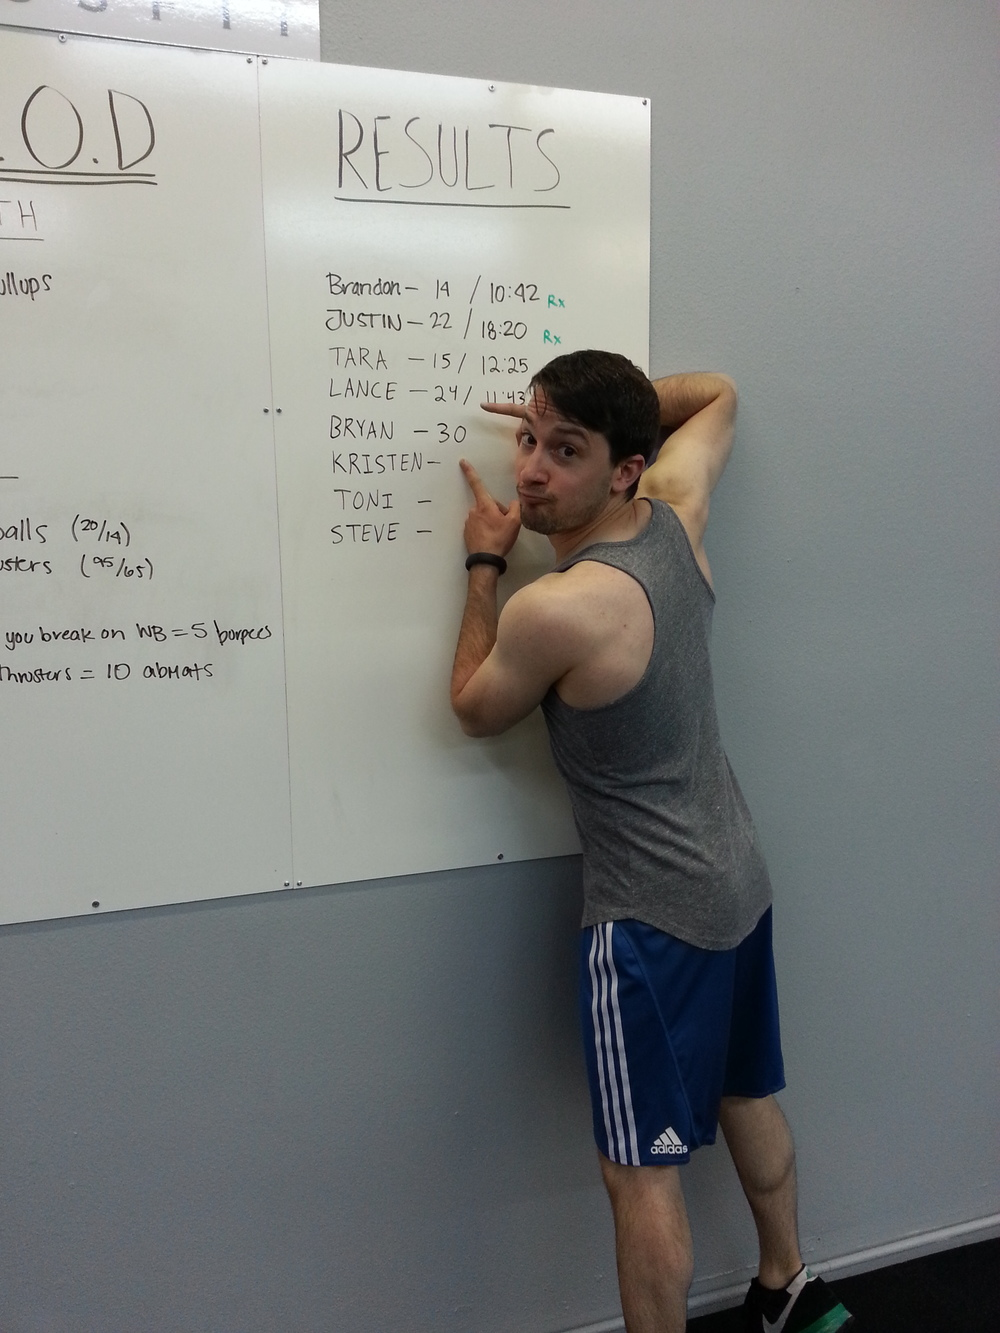 Bryan with the most pullups (30 reps!). Great job!